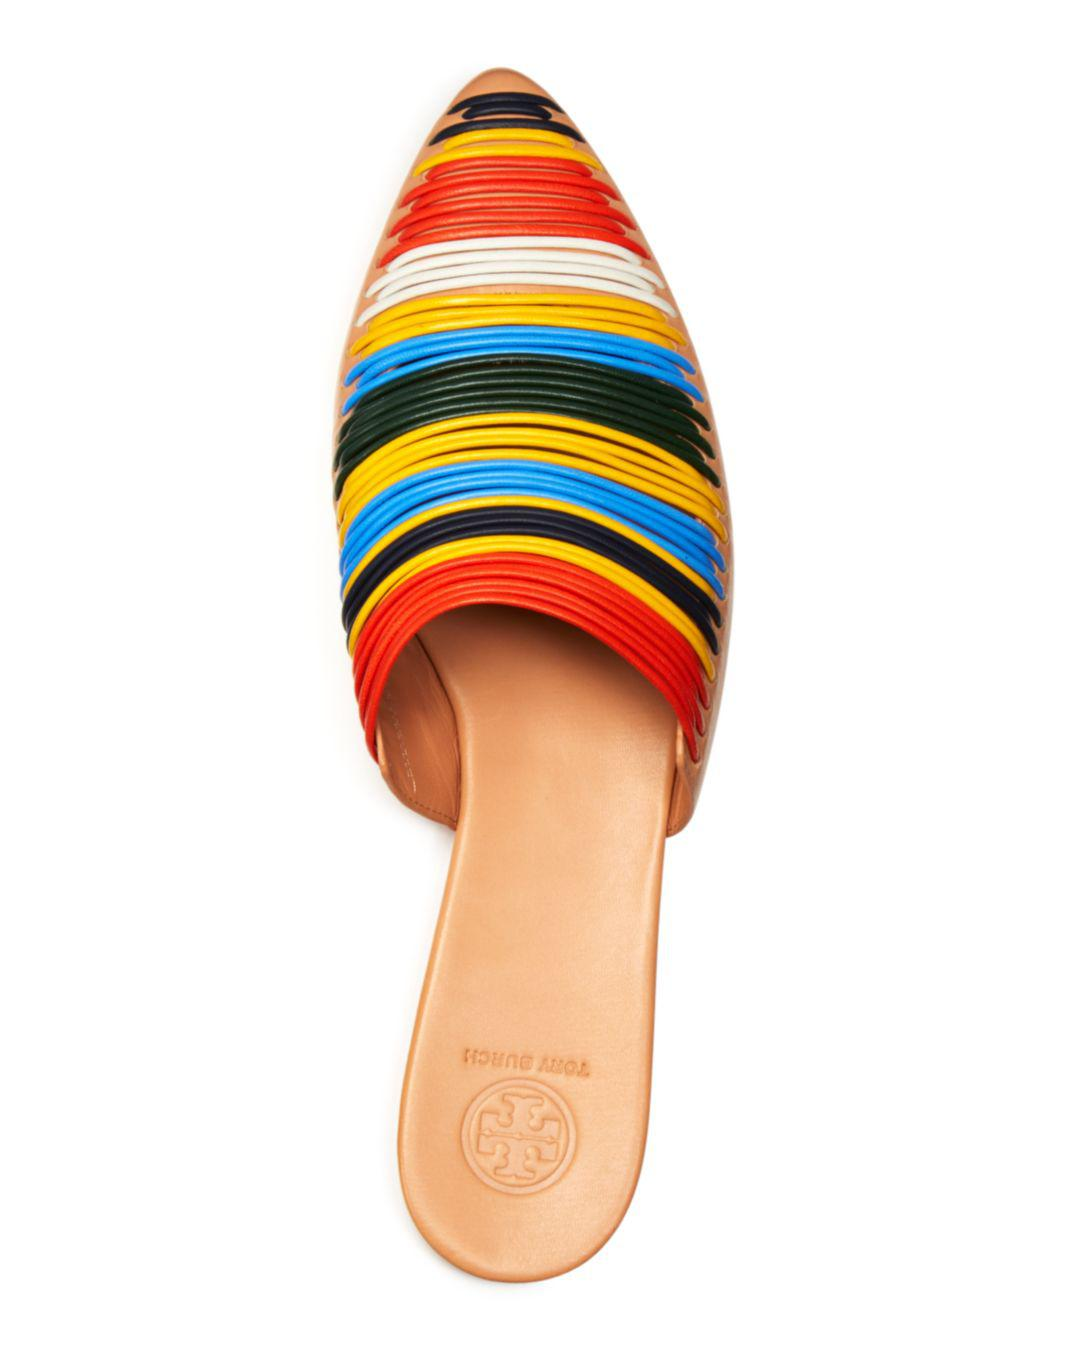 d519ea2b7f02 Tory Burch - White Women s Sienna Woven Leather Pointed Toe Mules - Lyst.  View fullscreen